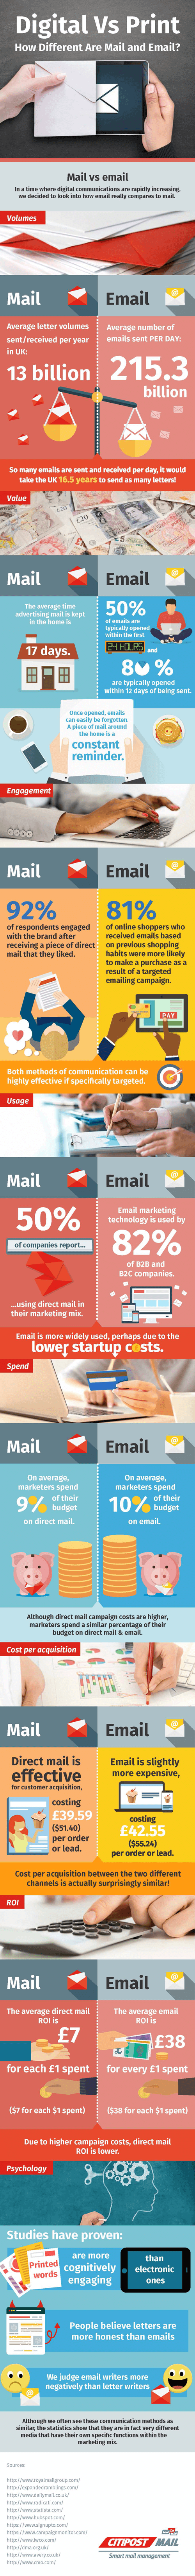 digital-vs-print-how-different-are-mail-and-email_585d0d3f2220f